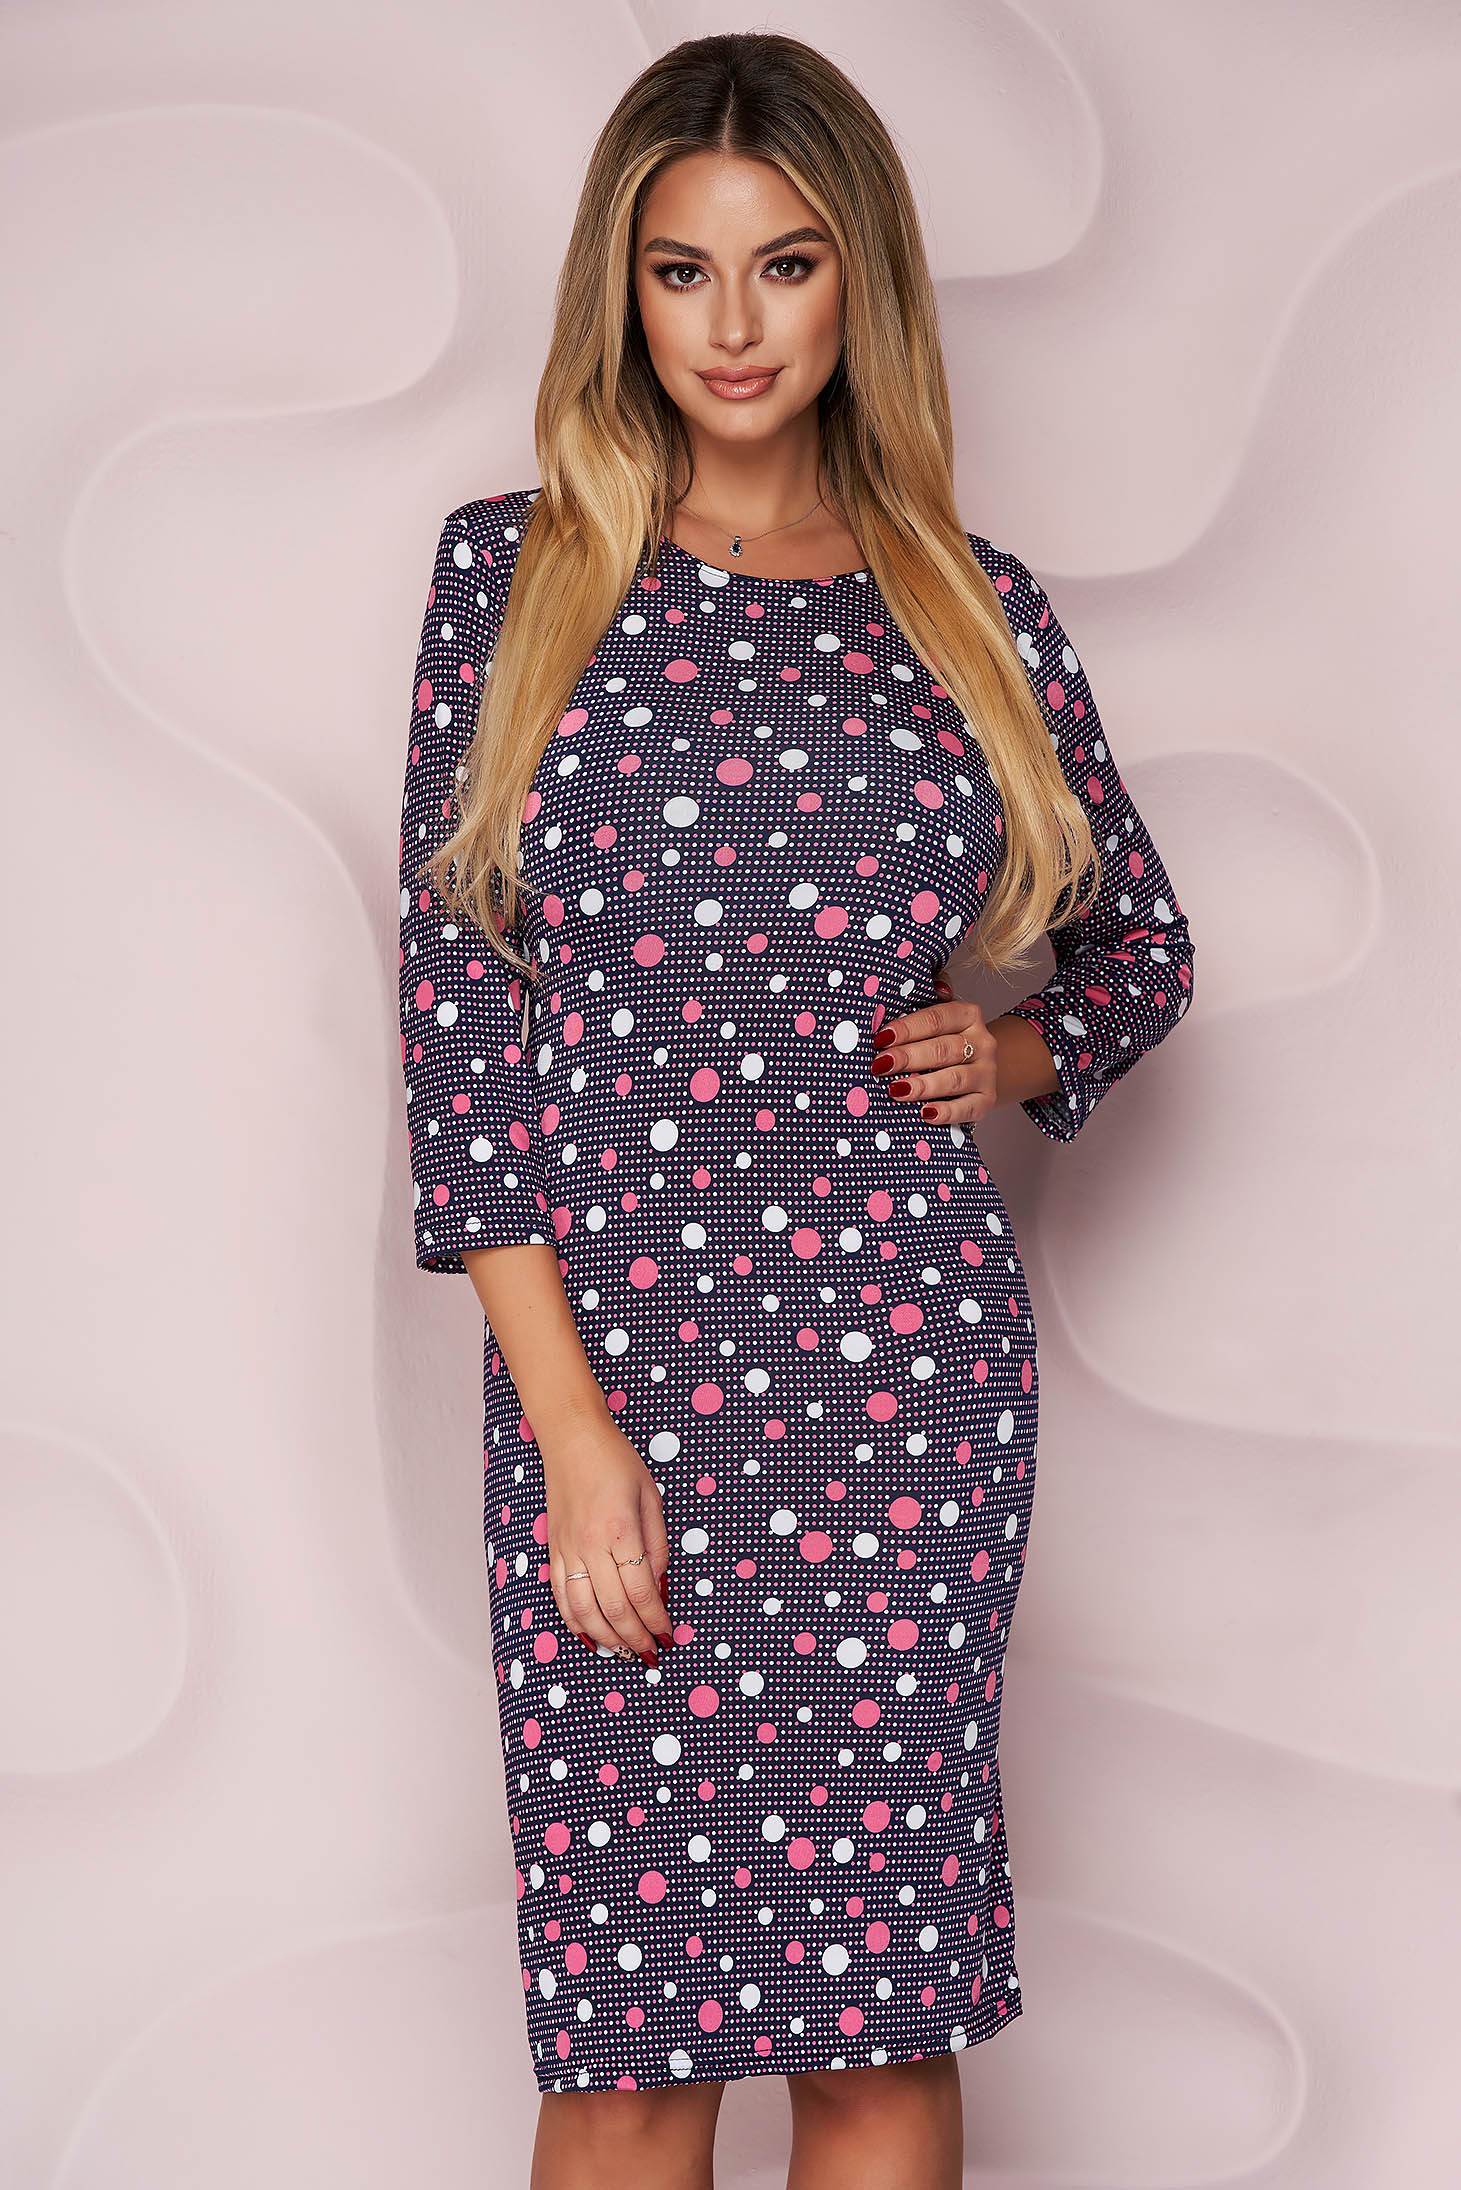 Dress office straight midi from elastic and fine fabric with 3/4 sleeves light material